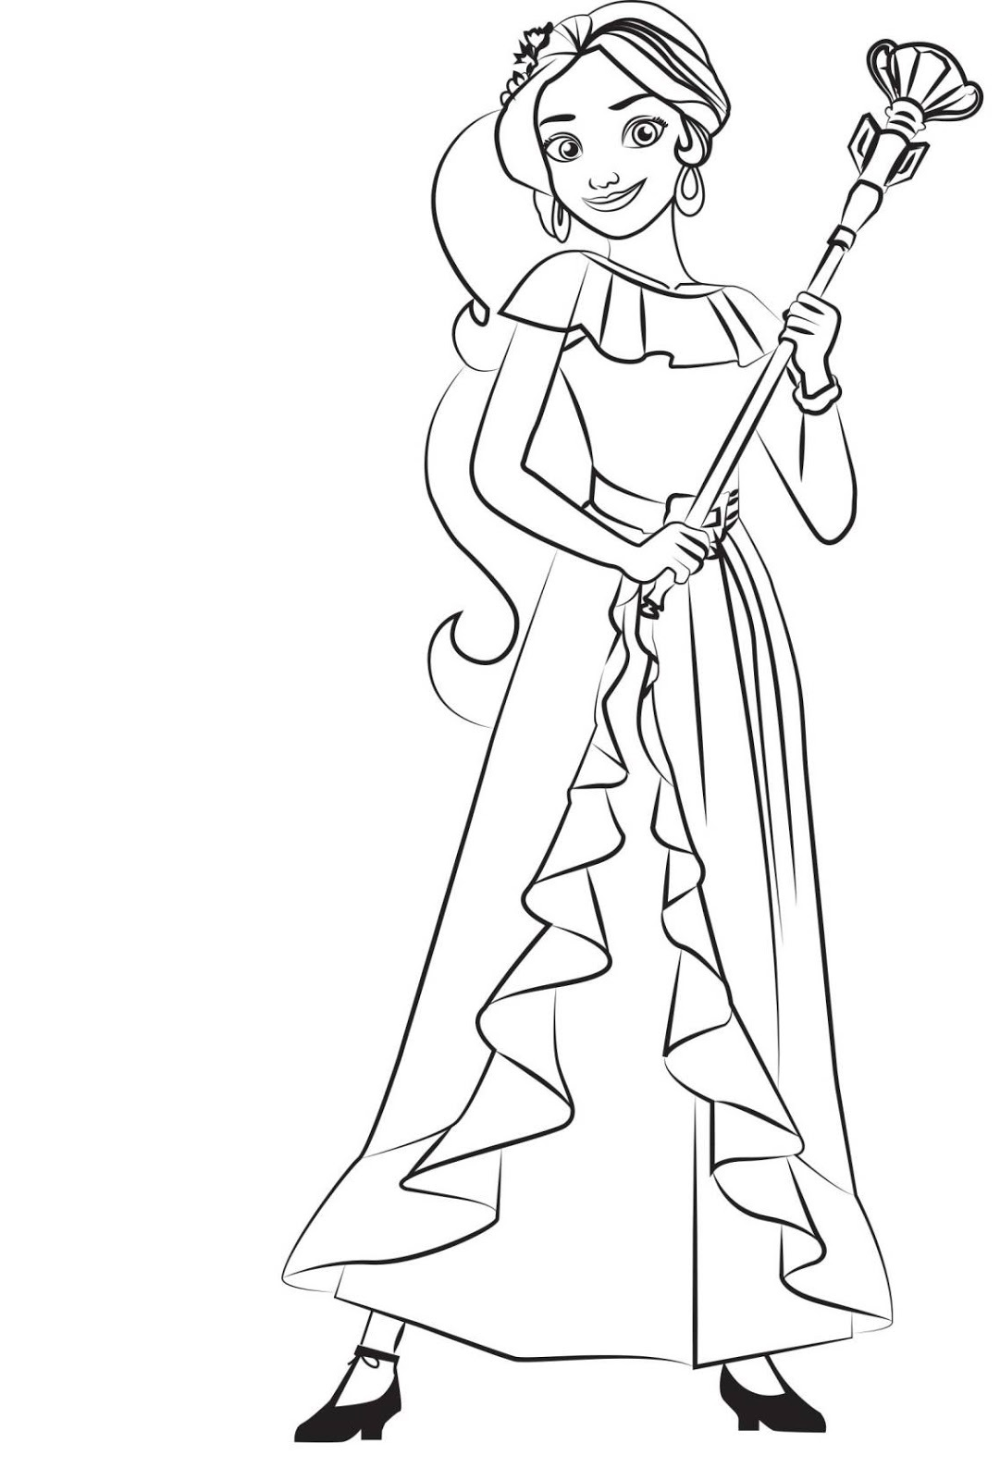 Elena Of Avalor Coloring Pages For Elena Lovers Educative Printable Coloring Pages To Print Cartoon Coloring Pages Batman Coloring Pages [ png ]